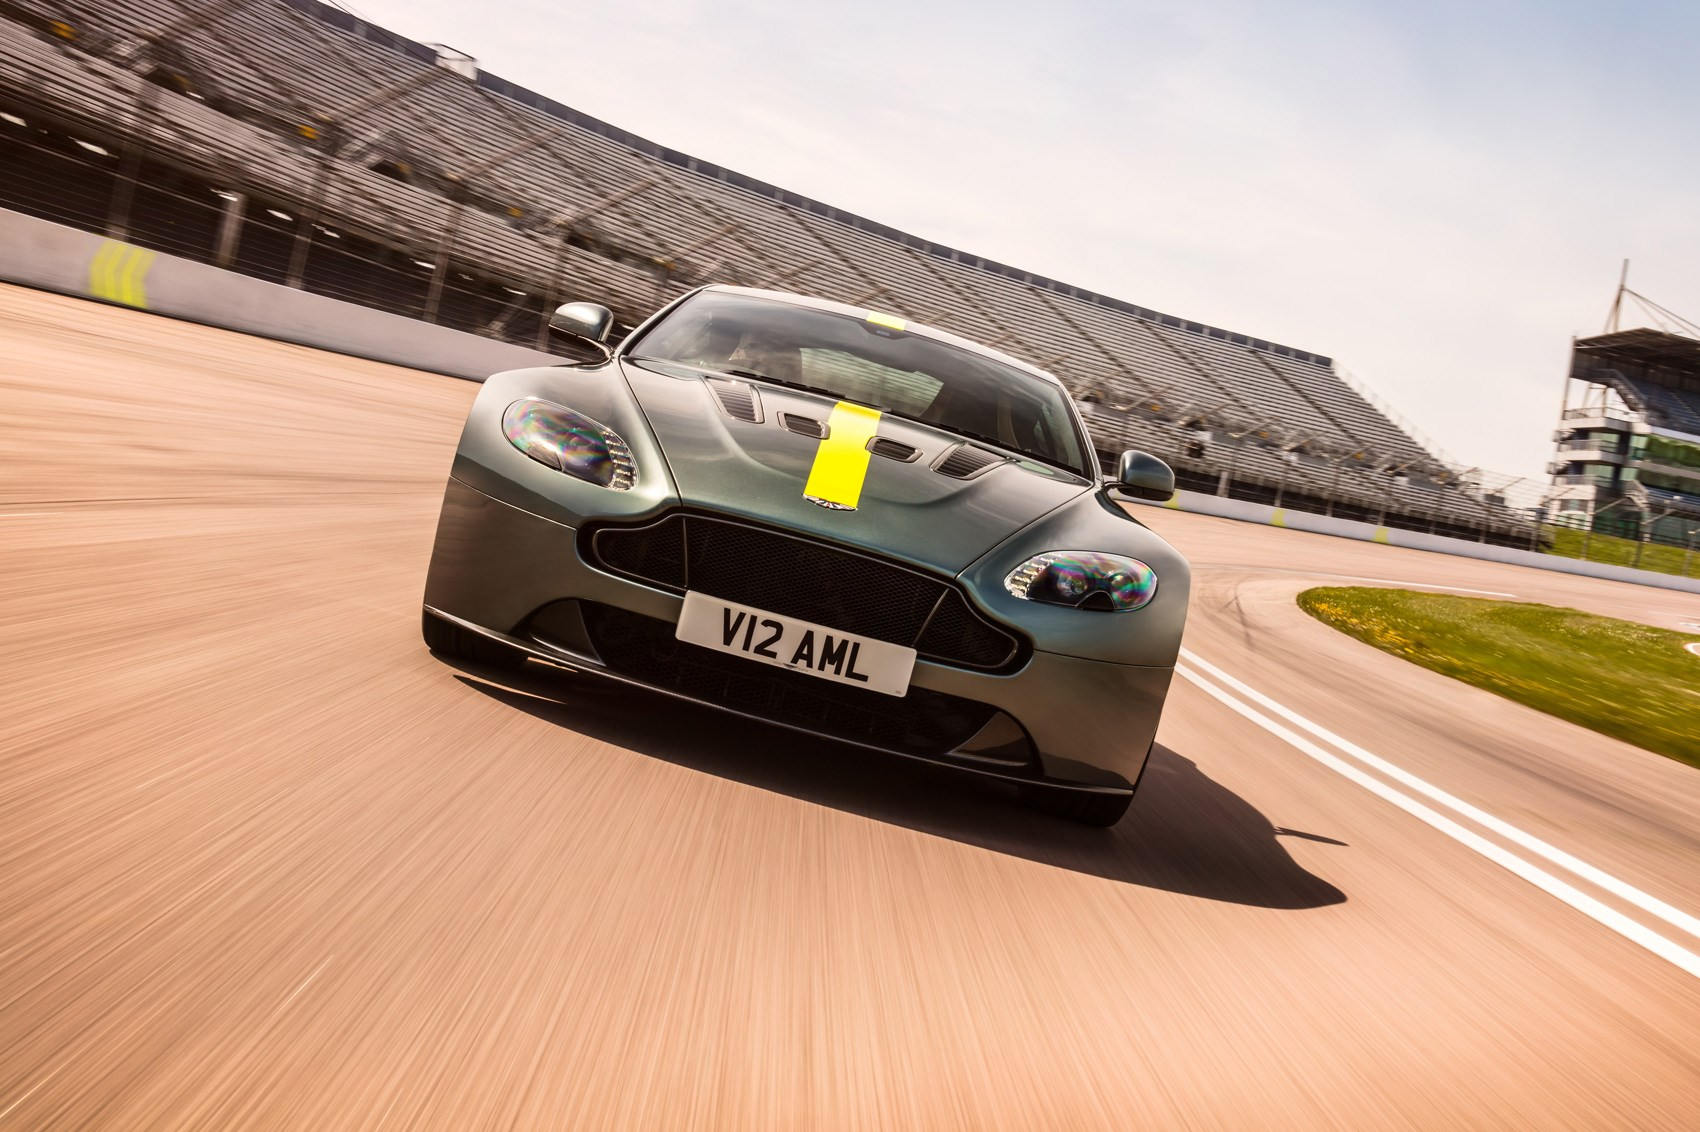 Aston Martin Vantage AMR: production models shown